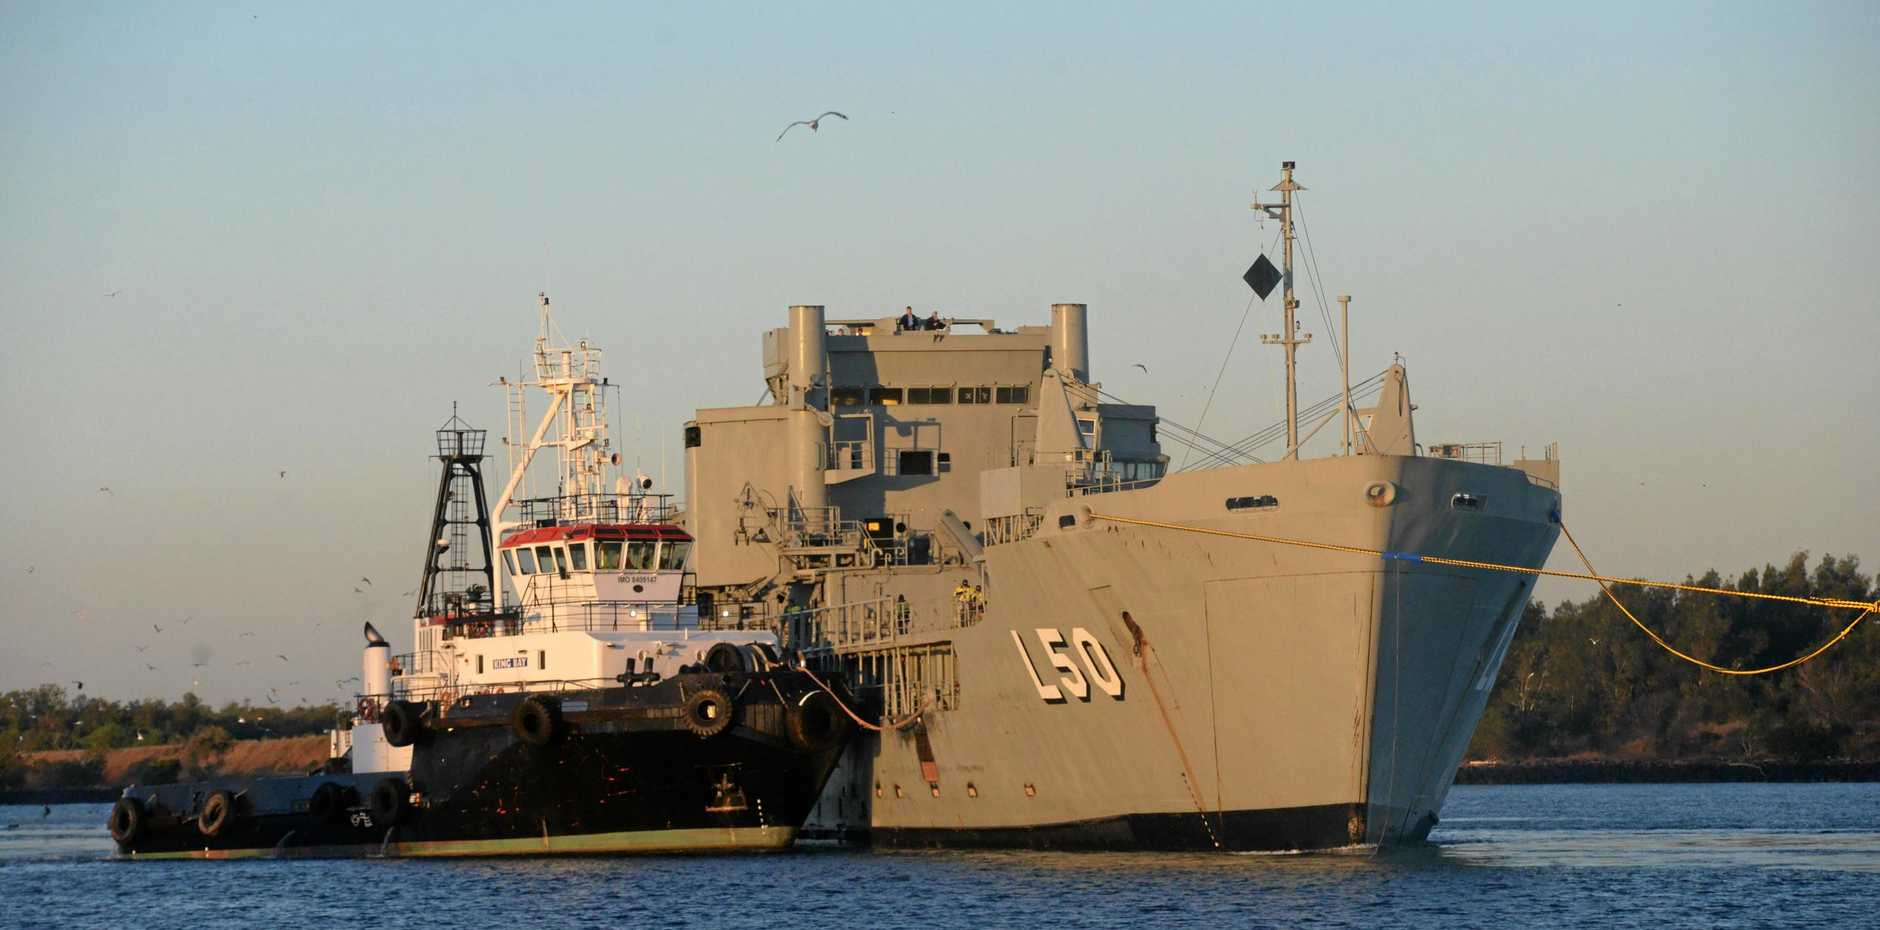 FINAL GOODBYES: ex-HMAS Tobruk leaves Bundaberg Port on her way to her final resting place off the coast of Wide Bay.